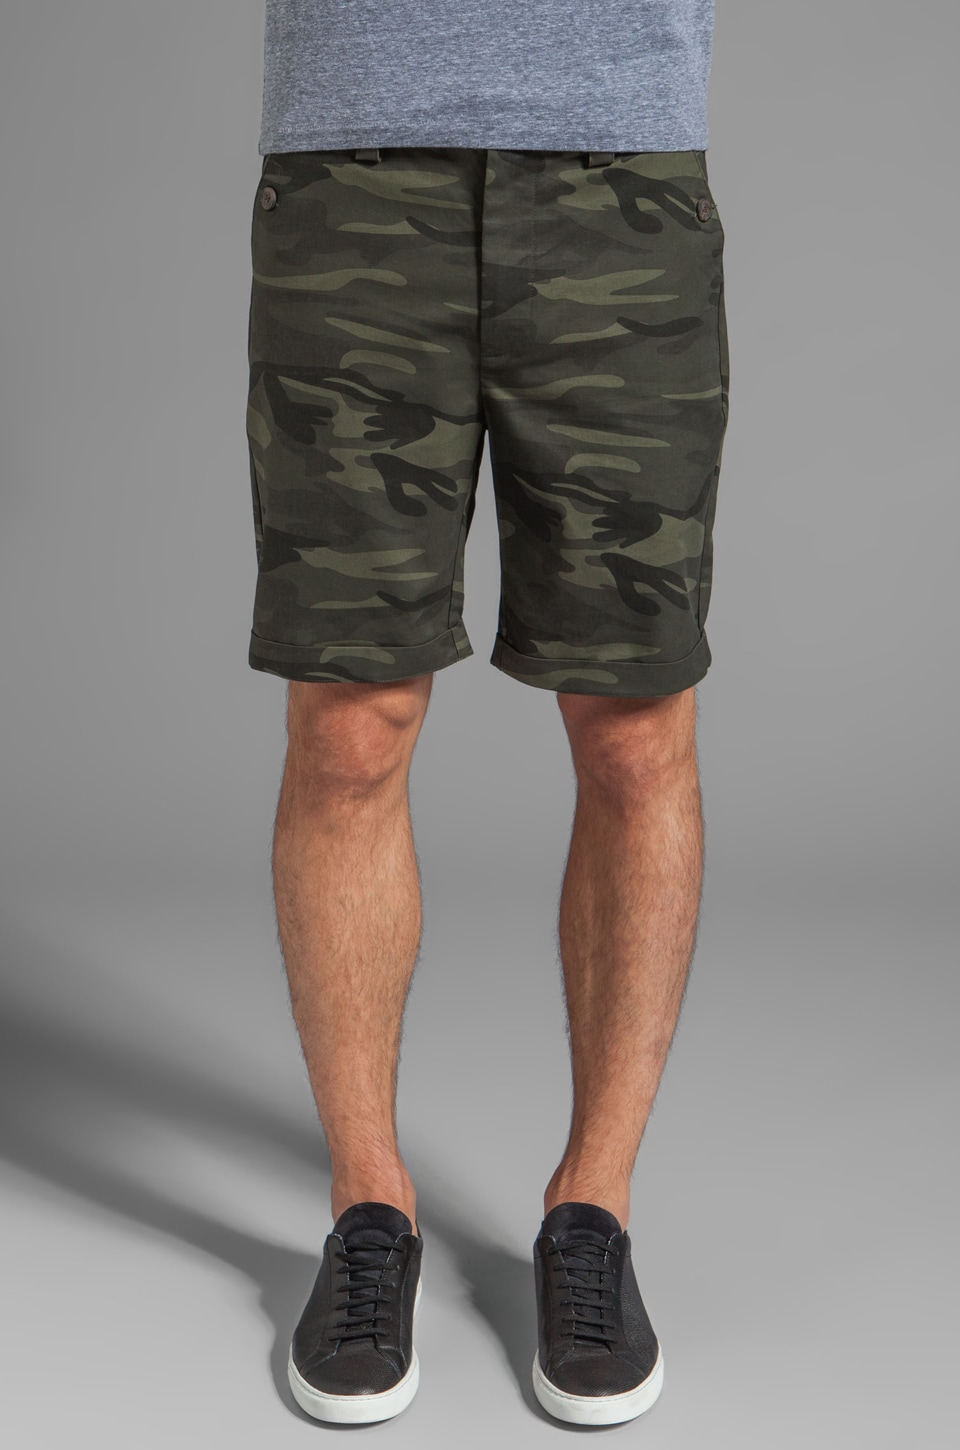 Z.A.K. Aztec Detailed Shorts in Camo/Olive